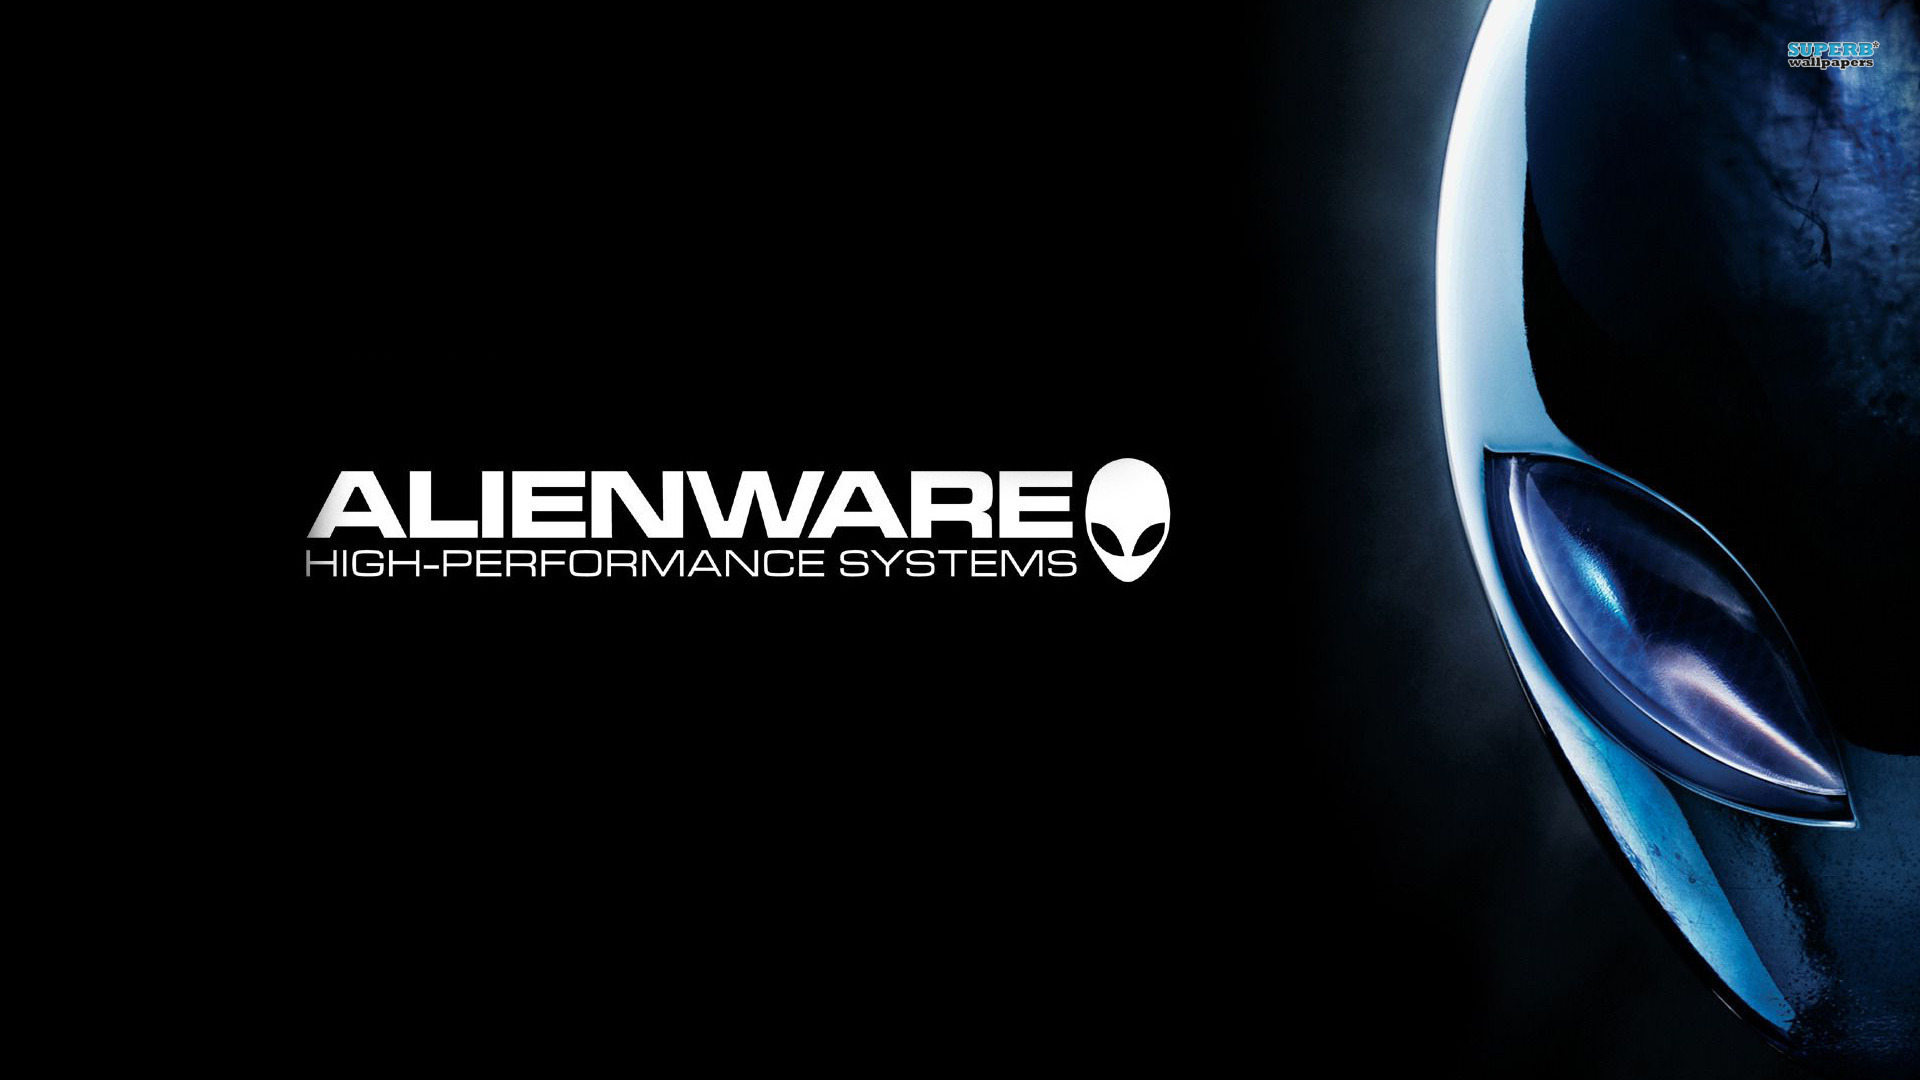 20 Spectacular Alienware Wallpapers For Desktop 1920x1080